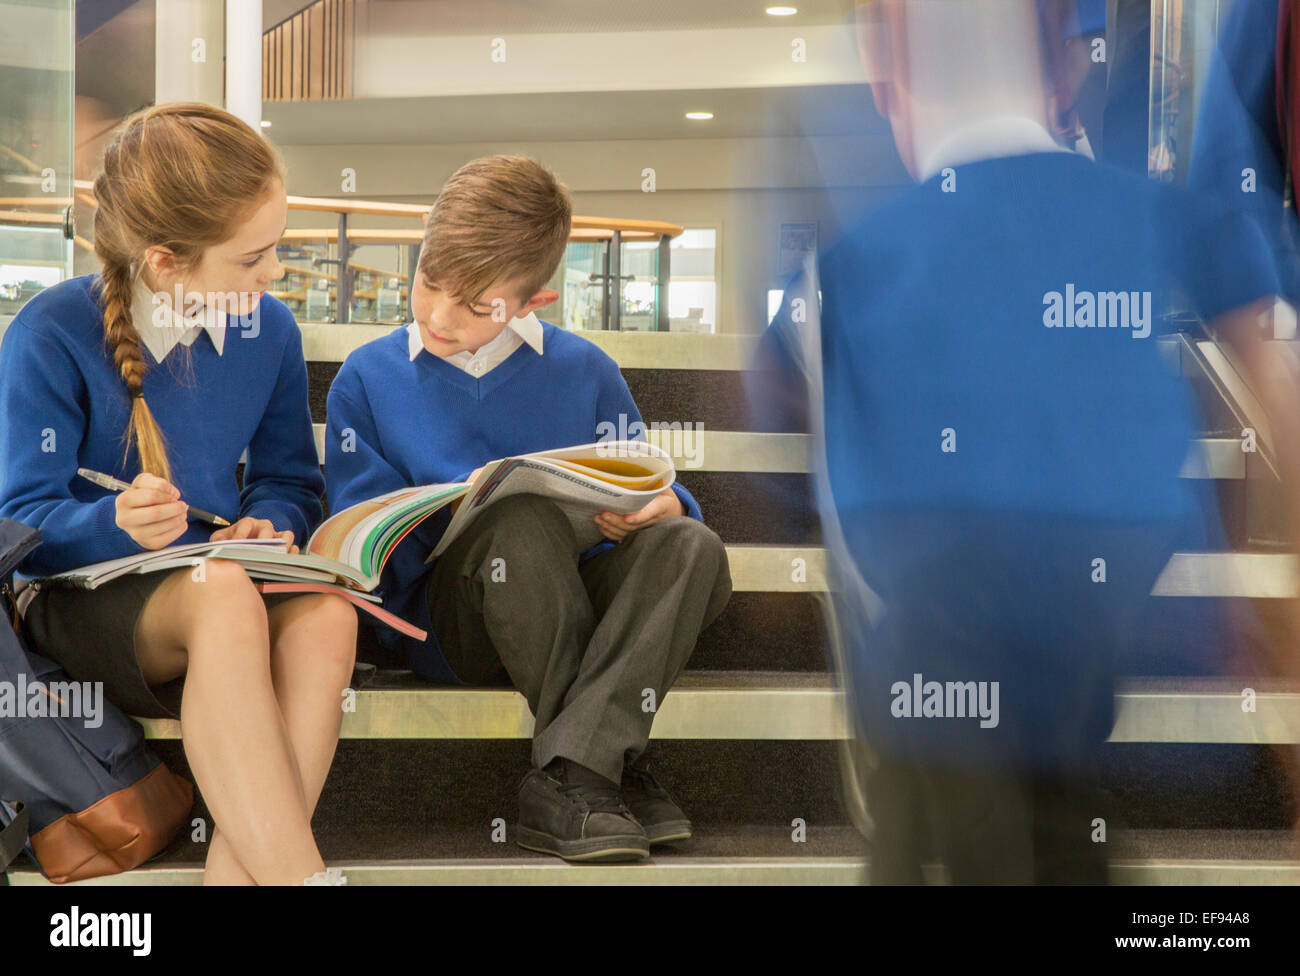 Elementary school children wearing school uniforms sitting on steps and writing in textbooks - Stock Image